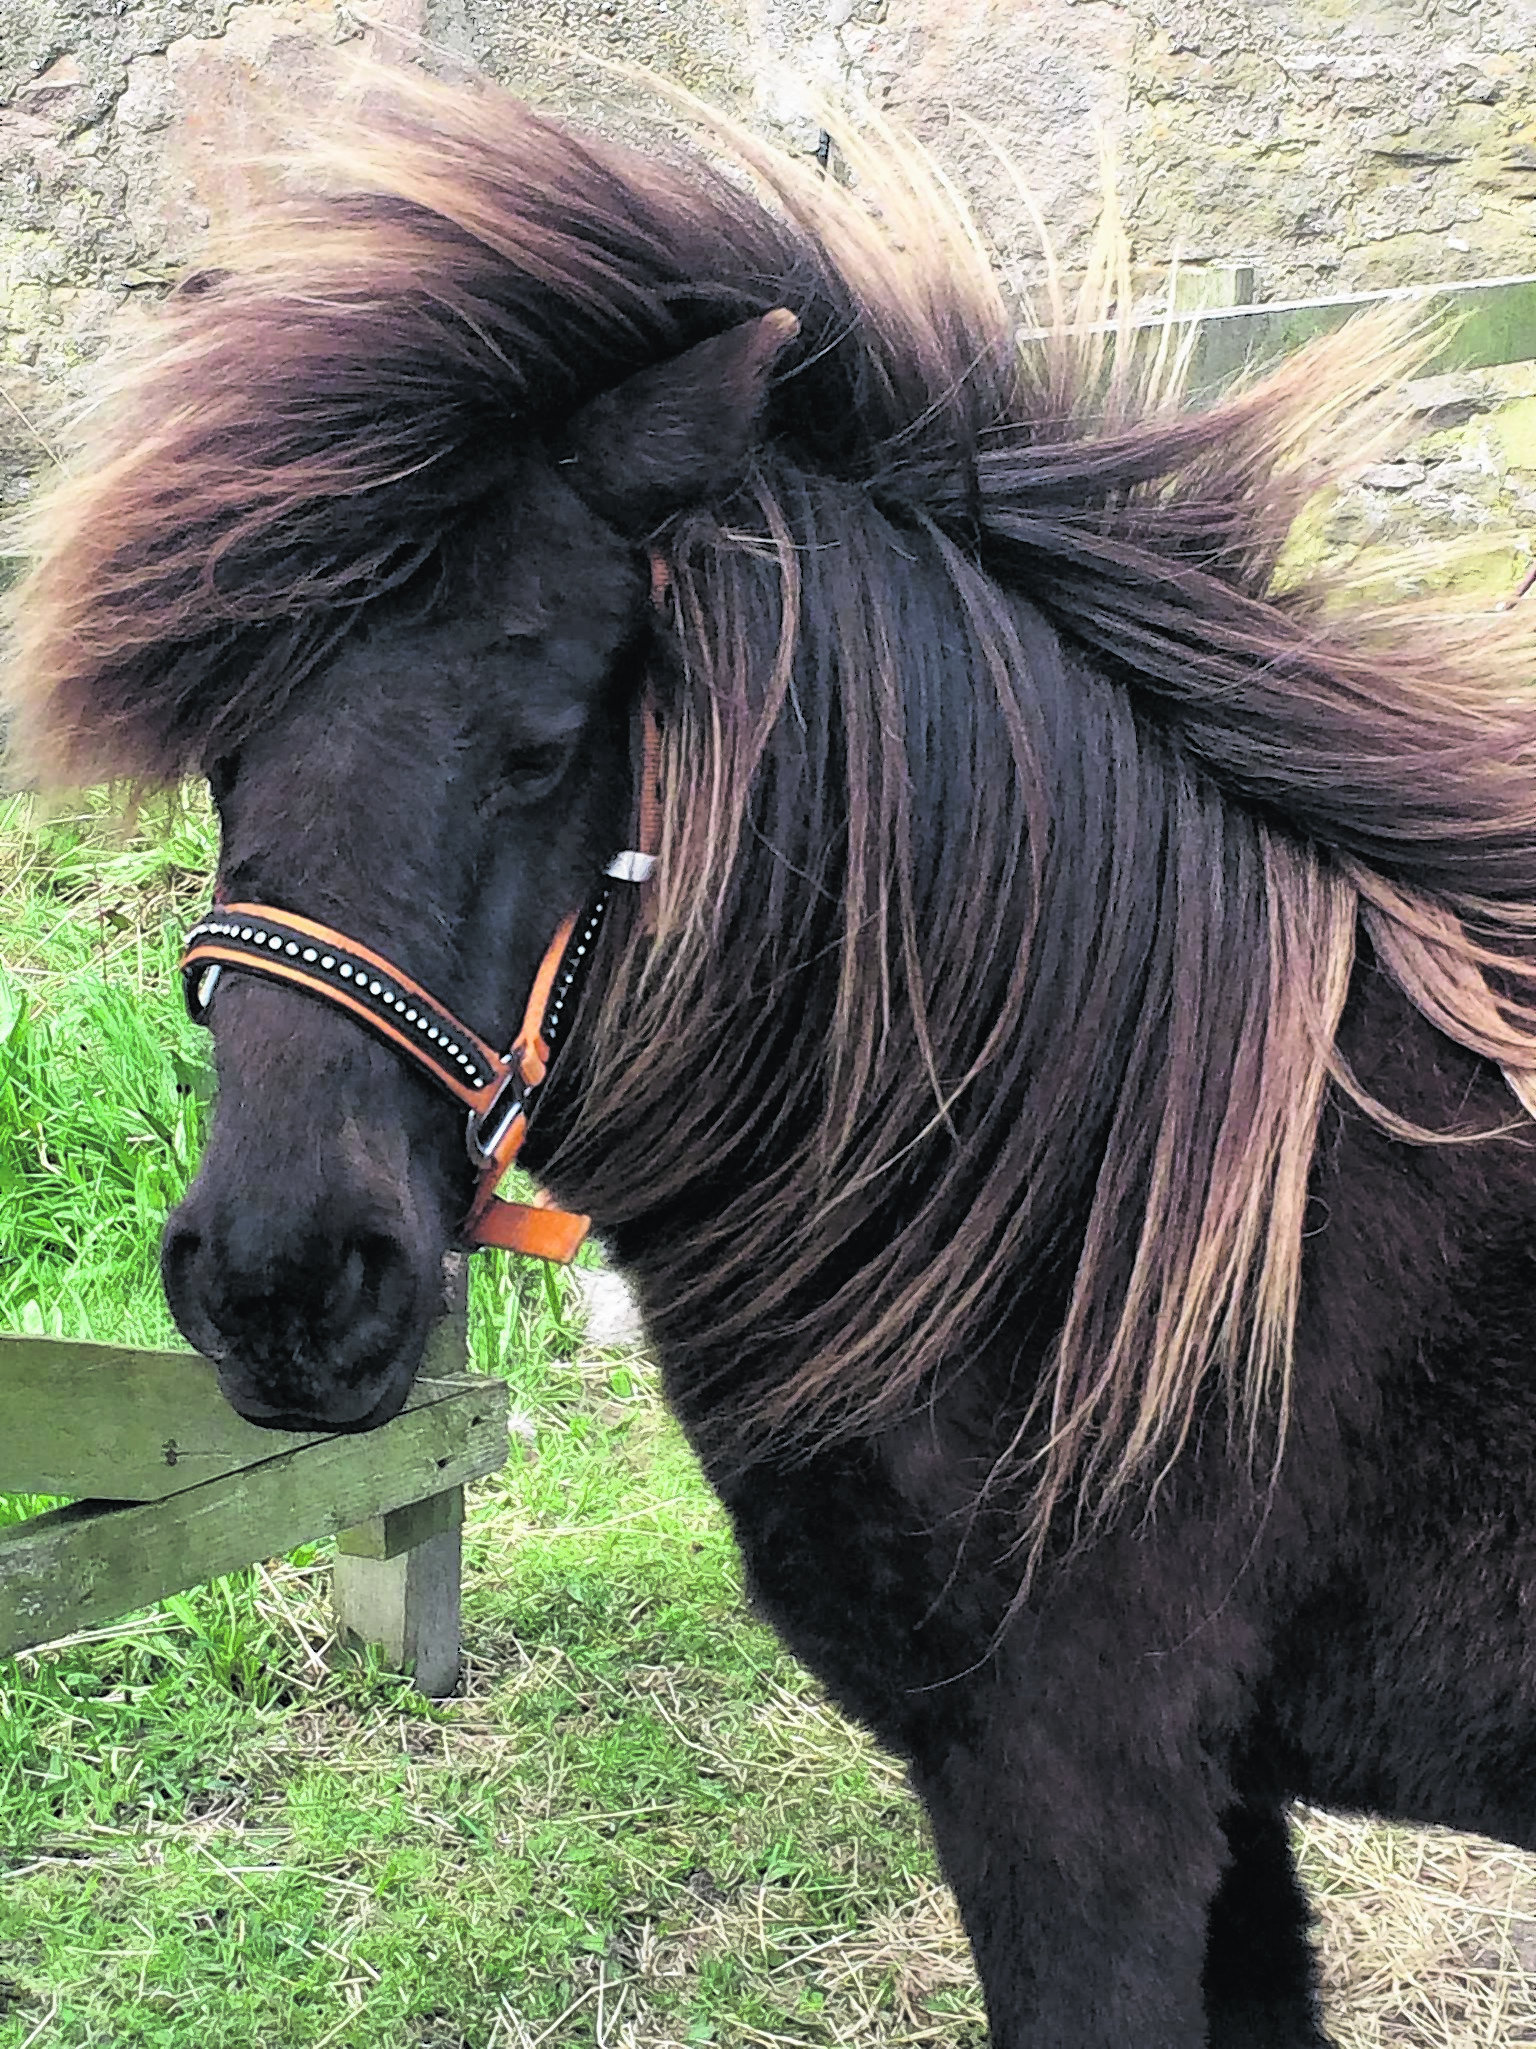 This is Crumpet, she is a six year old Shetland pony rescue.